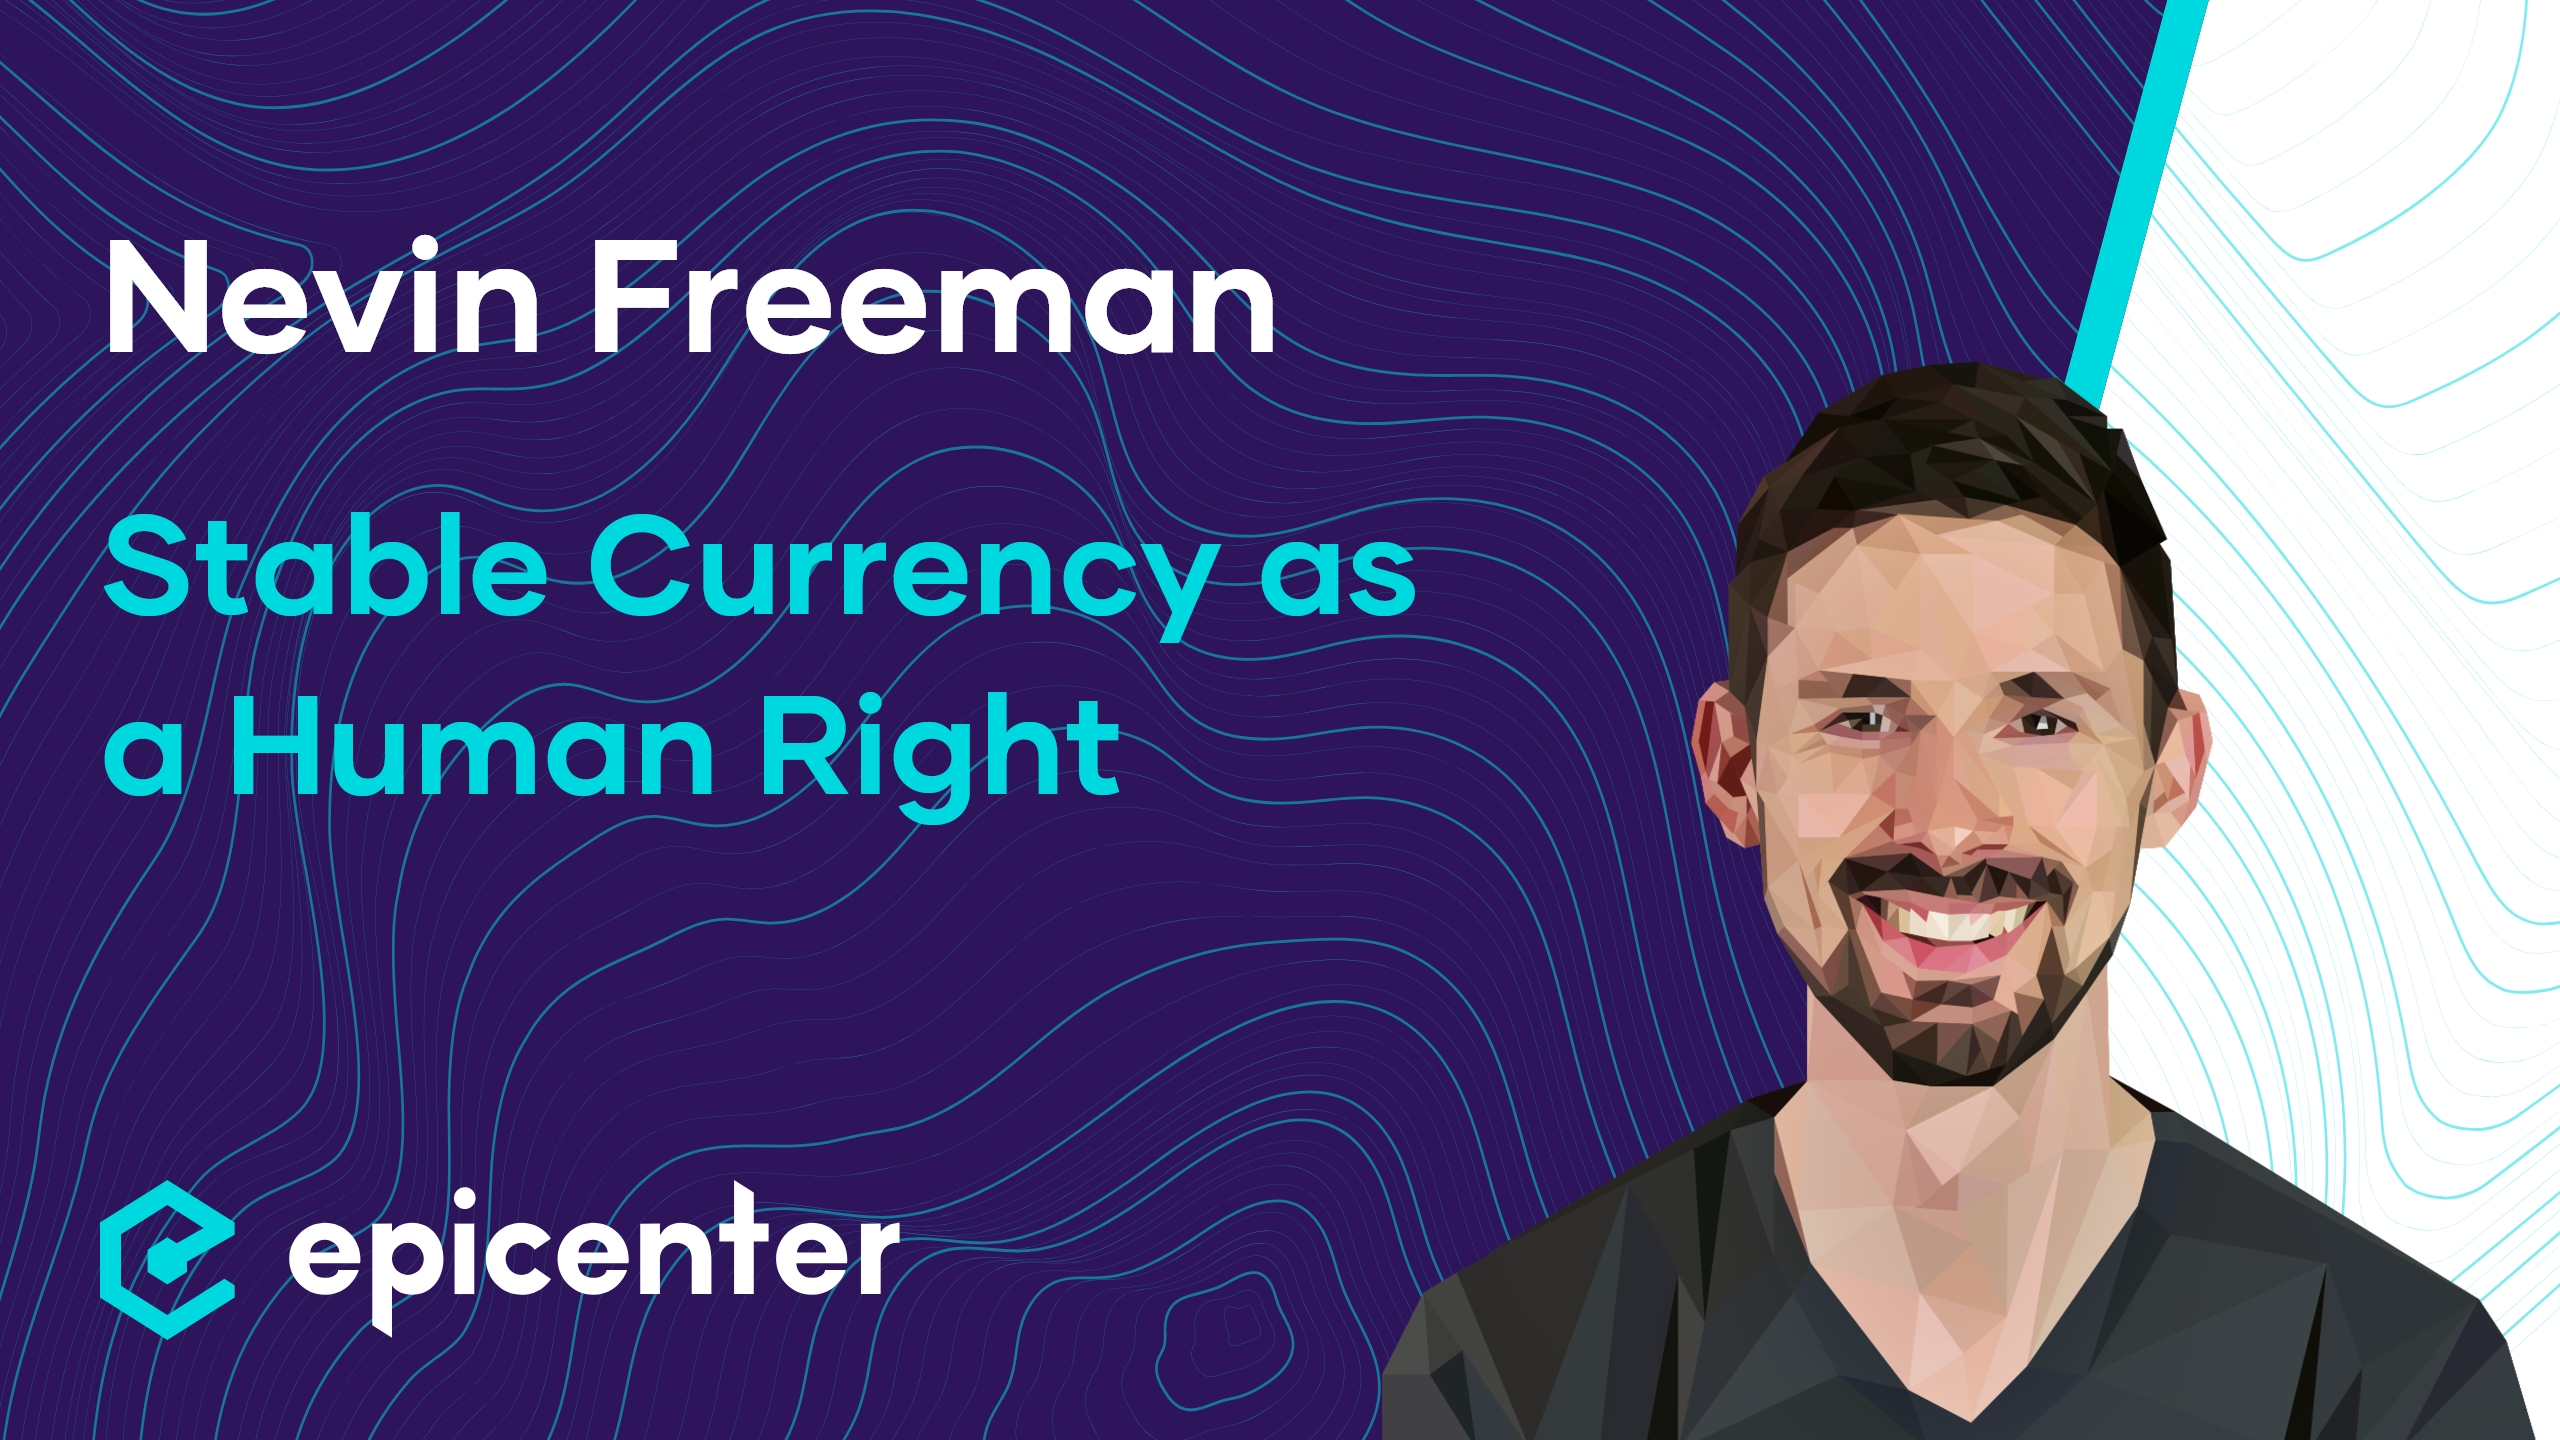 Nevin Freeman: Reserve – Stable Currency as a Human Right